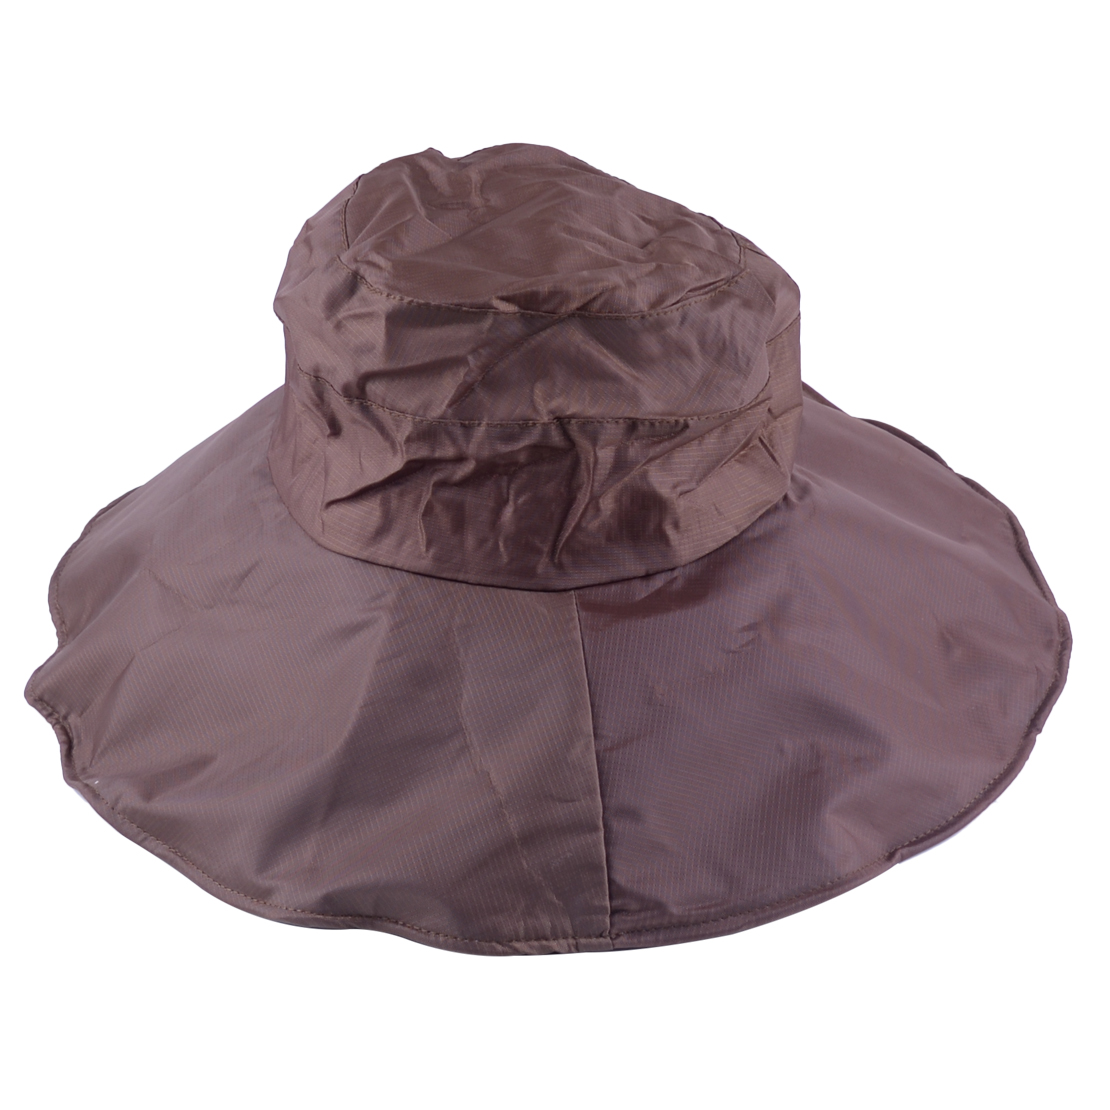 43f01ba9993c6 Women 60cm Rain Hats Waterproof Hat Wide Brim Bucket Hat Cap Sun SPF ...